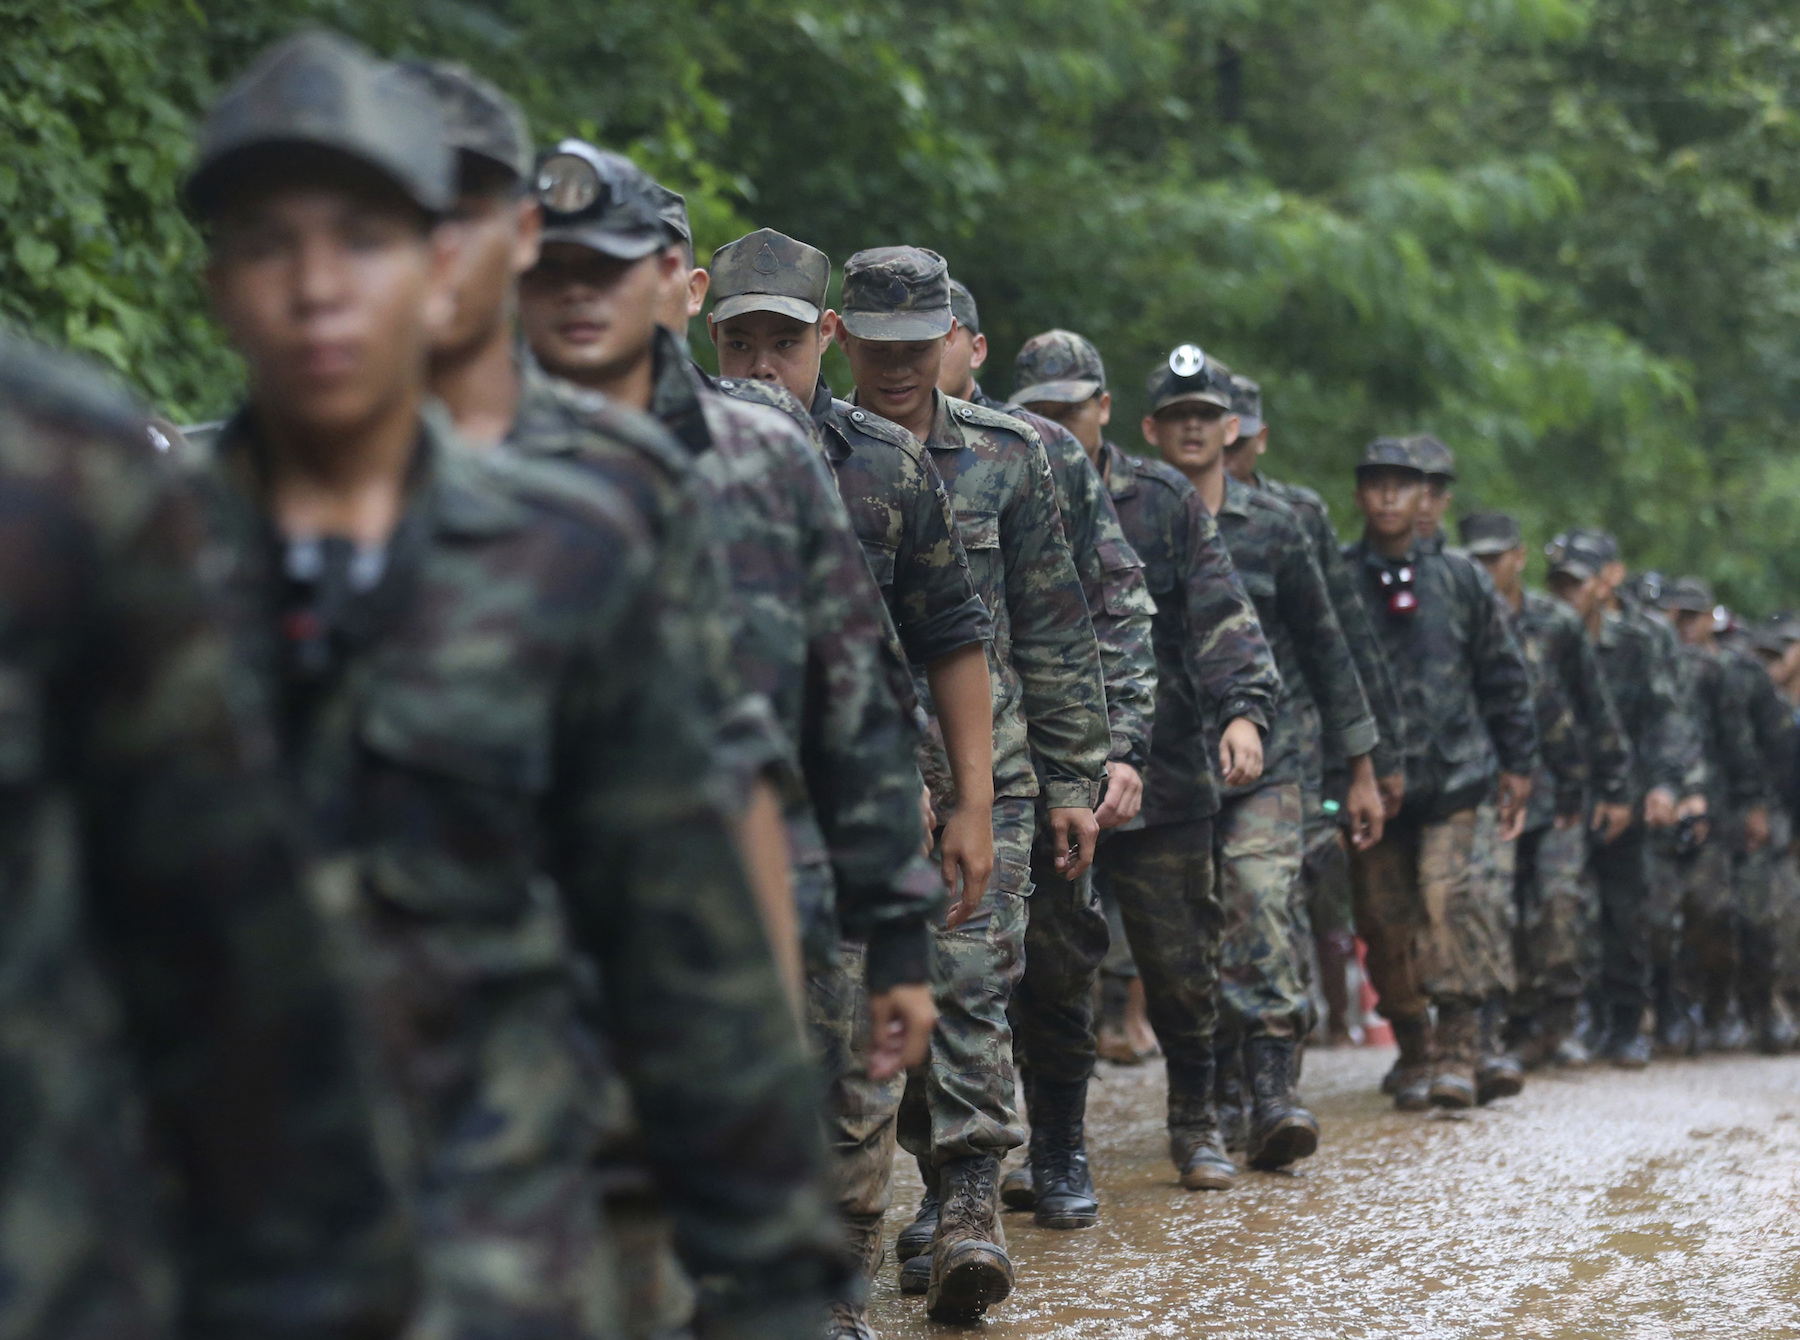 "<div class=""meta image-caption""><div class=""origin-logo origin-image ap""><span>AP</span></div><span class=""caption-text"">Thai soldiers line up to the cave area as they continue the search for a young soccer team and their coach believed to be missing in a large cave, Wednesday, June 27, 2018. (AP Photo/Sakchai Lalit)</span></div>"